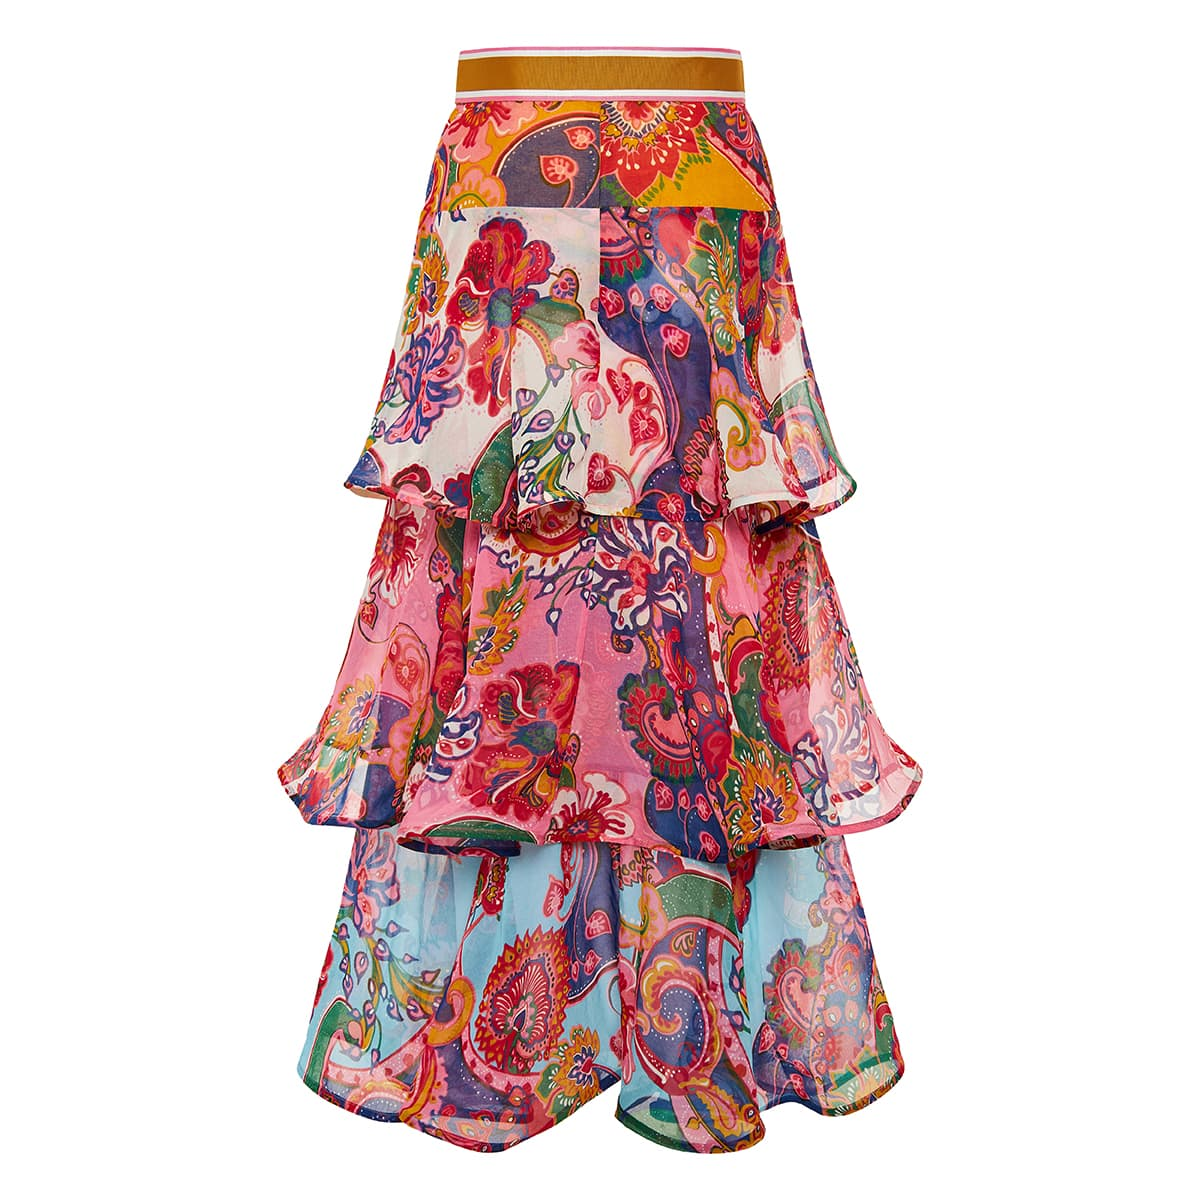 Lovestruck printed flounce midi skirt